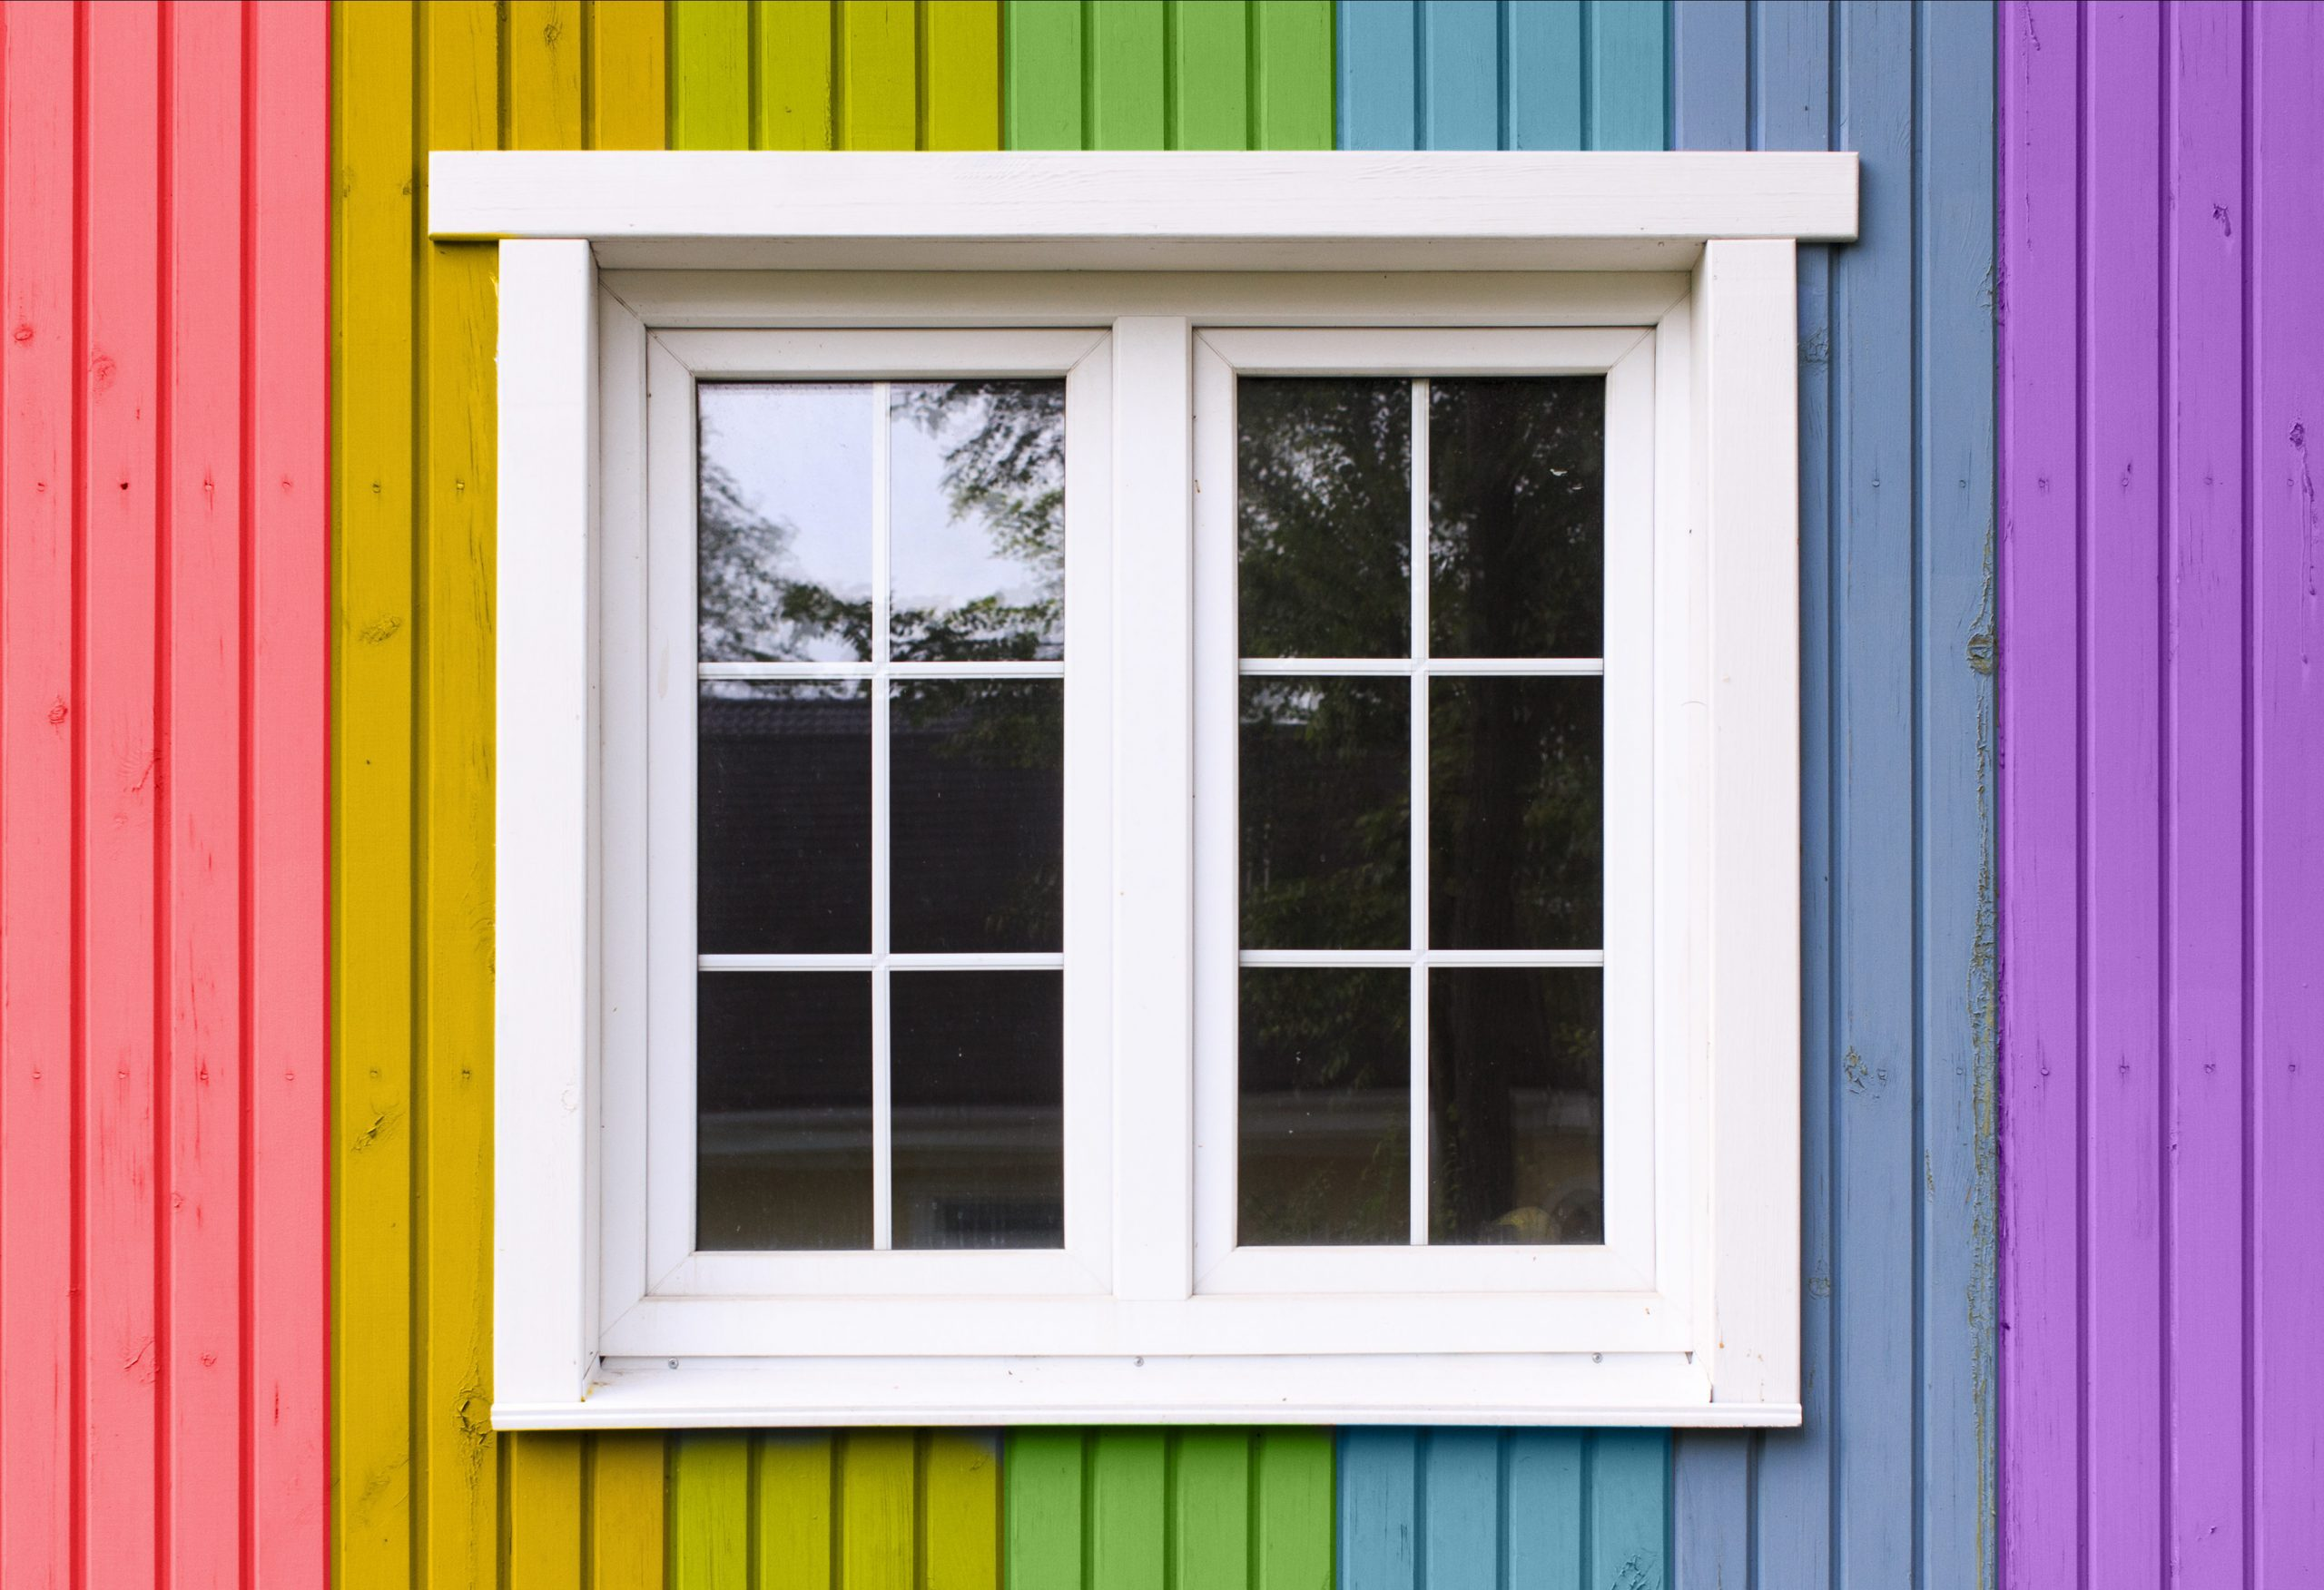 wooden wall of a house painted in a rainbow of colors